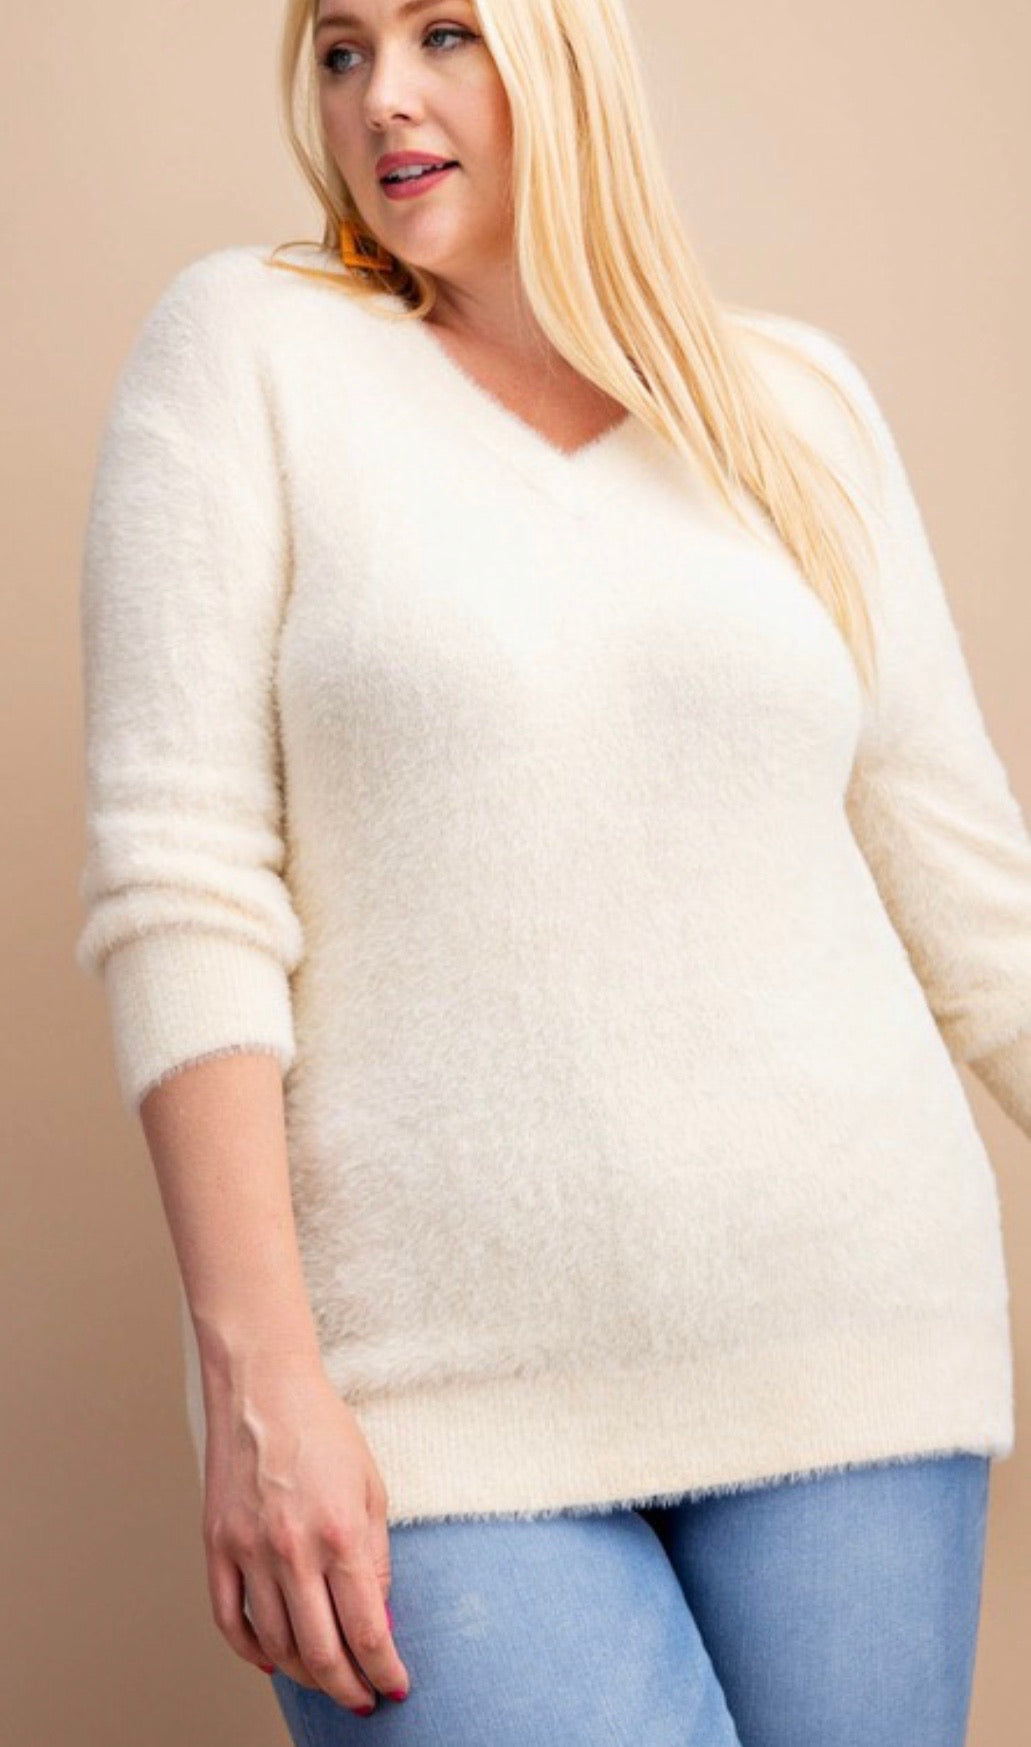 Soft fur knitted deep v-neck sweater | Cheeky Cactus